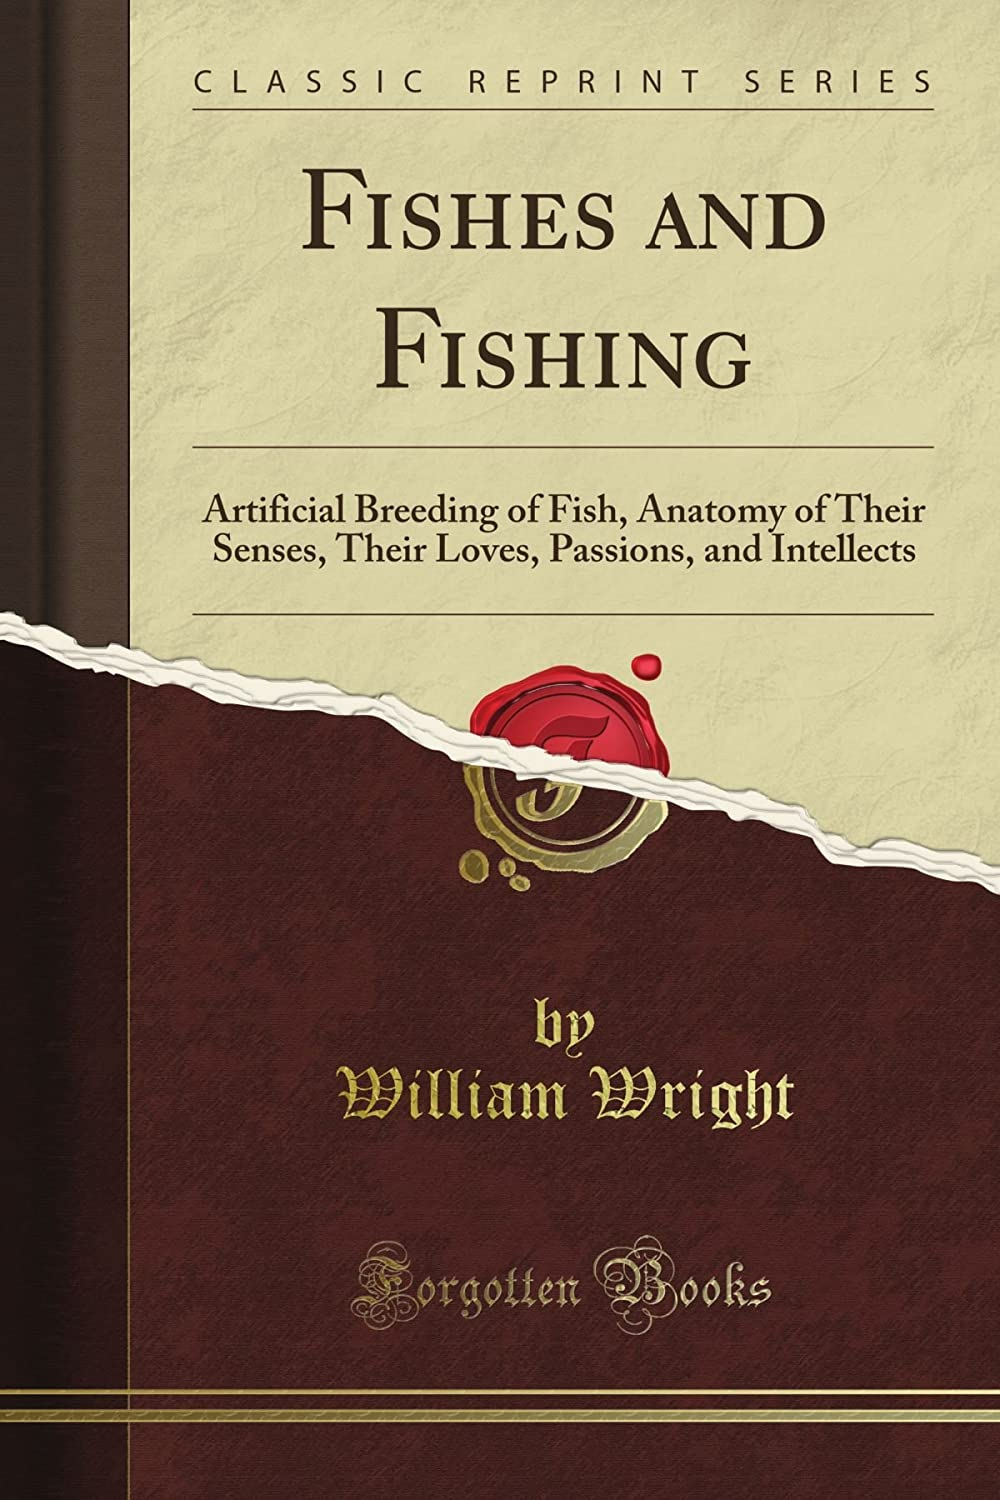 Fishes and Fishing: Artificial Breeding of Fish, Anatomy of Their Senses, Their Loves, Passions, and Intellects (Classic Reprint)